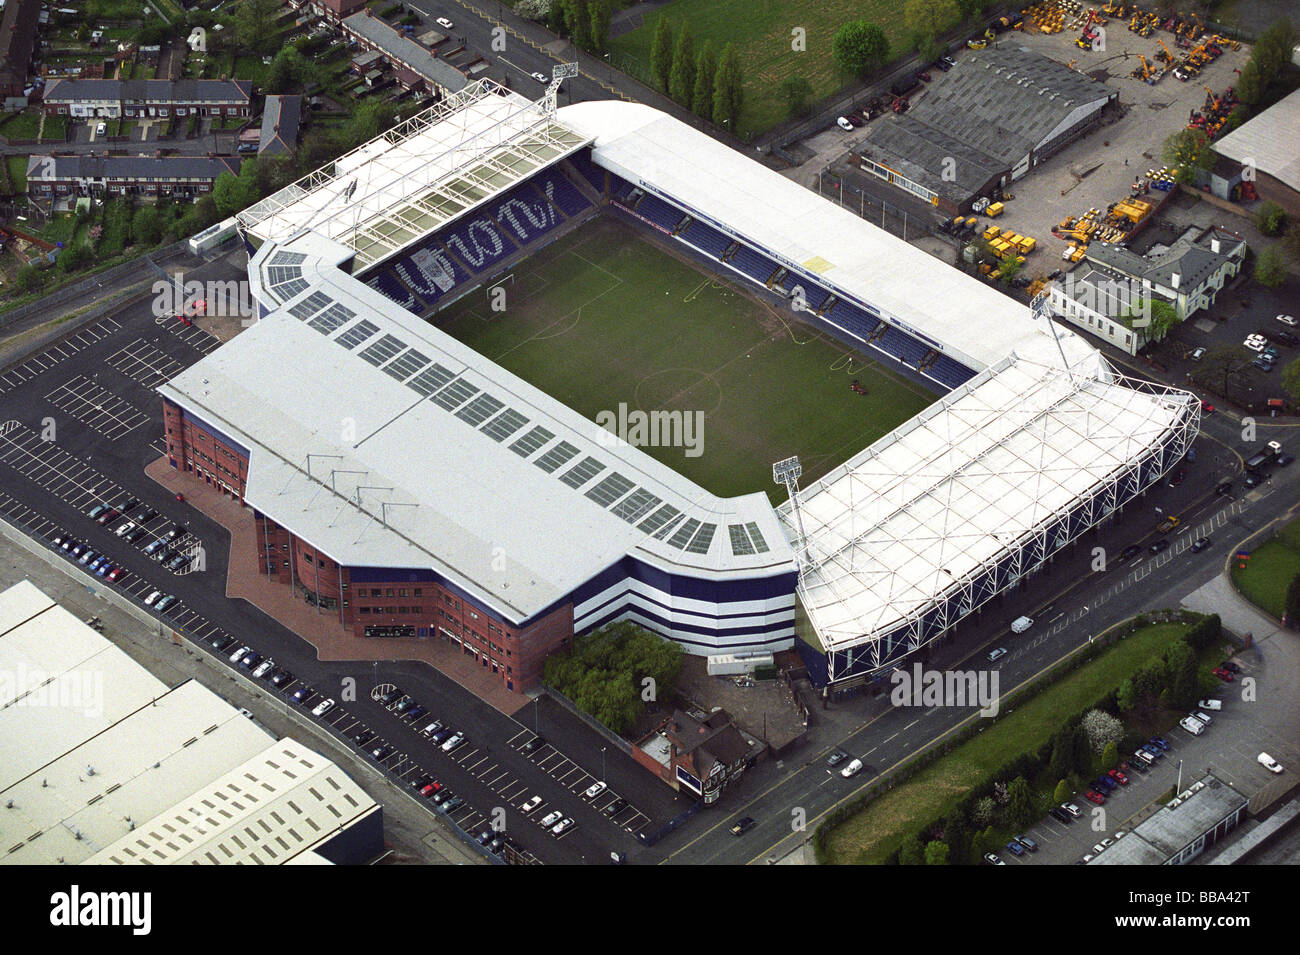 aerial-view-of-the-hawthorns-home-of-west-bromwich-albion-football-BBA42T.jpg